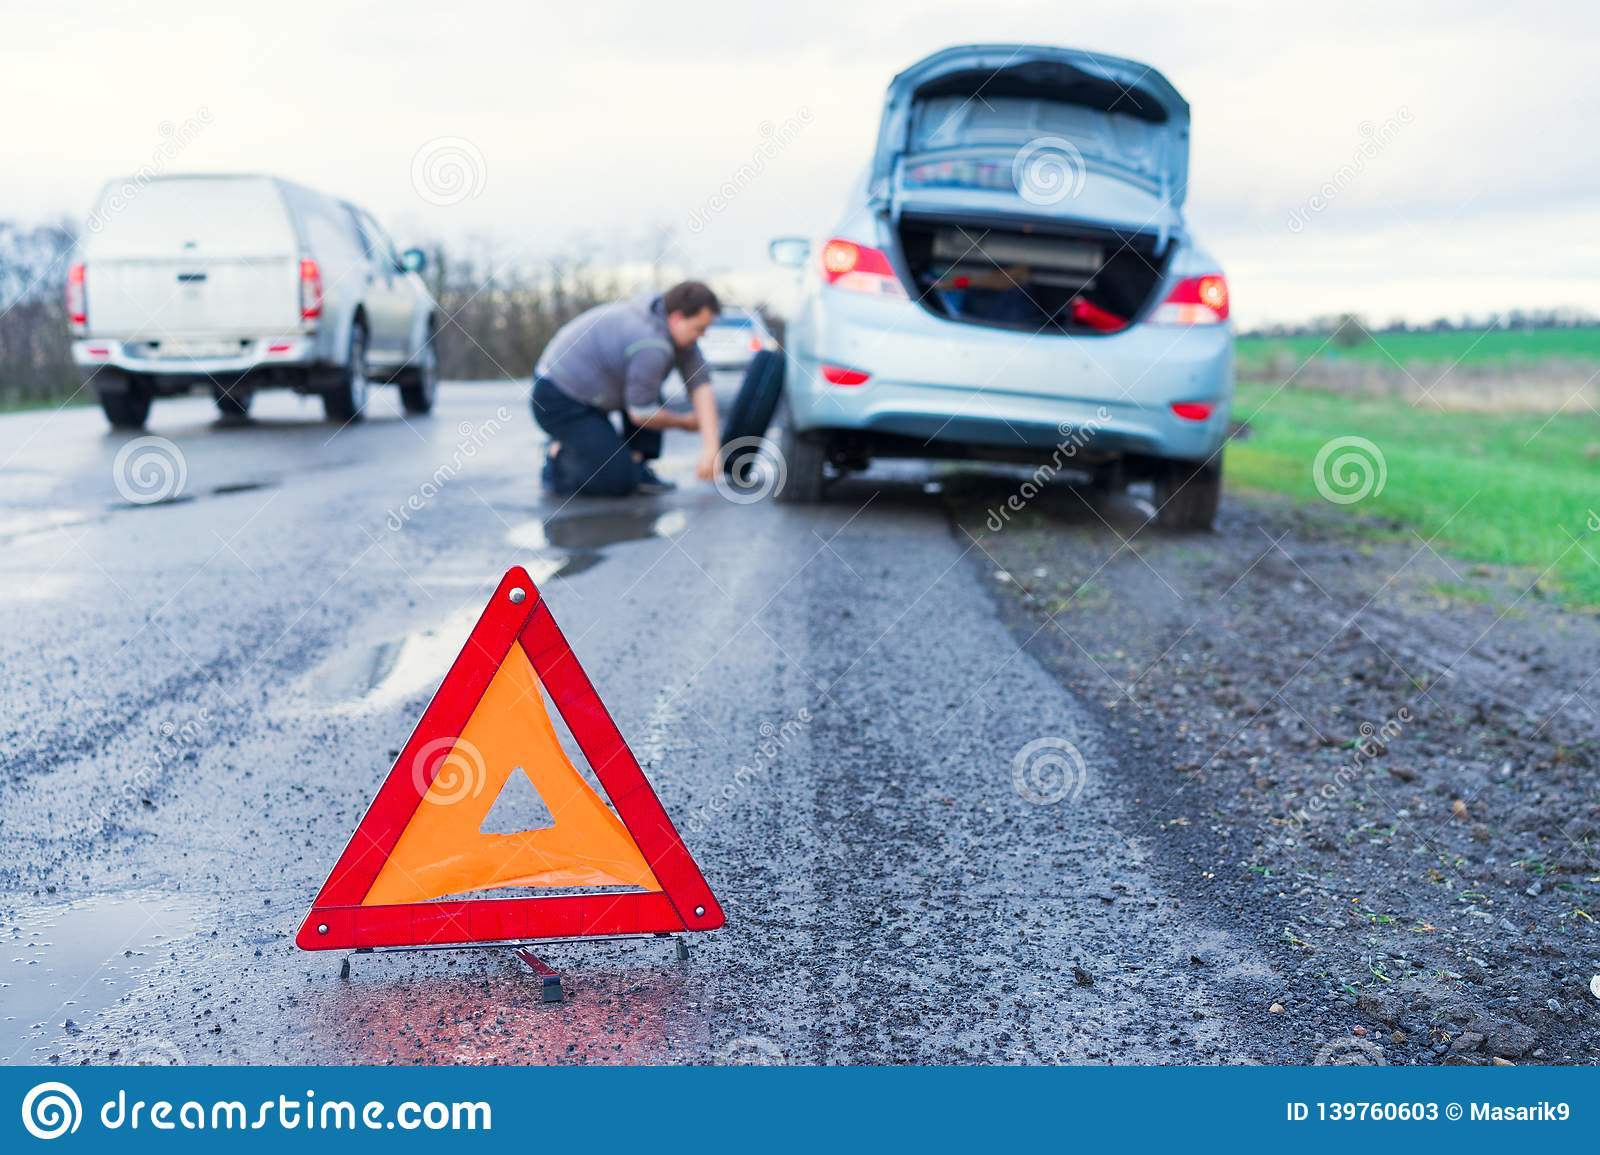 Road accident sign on the background man replaces flat tyre on road. Car tire leak because of nail pounding